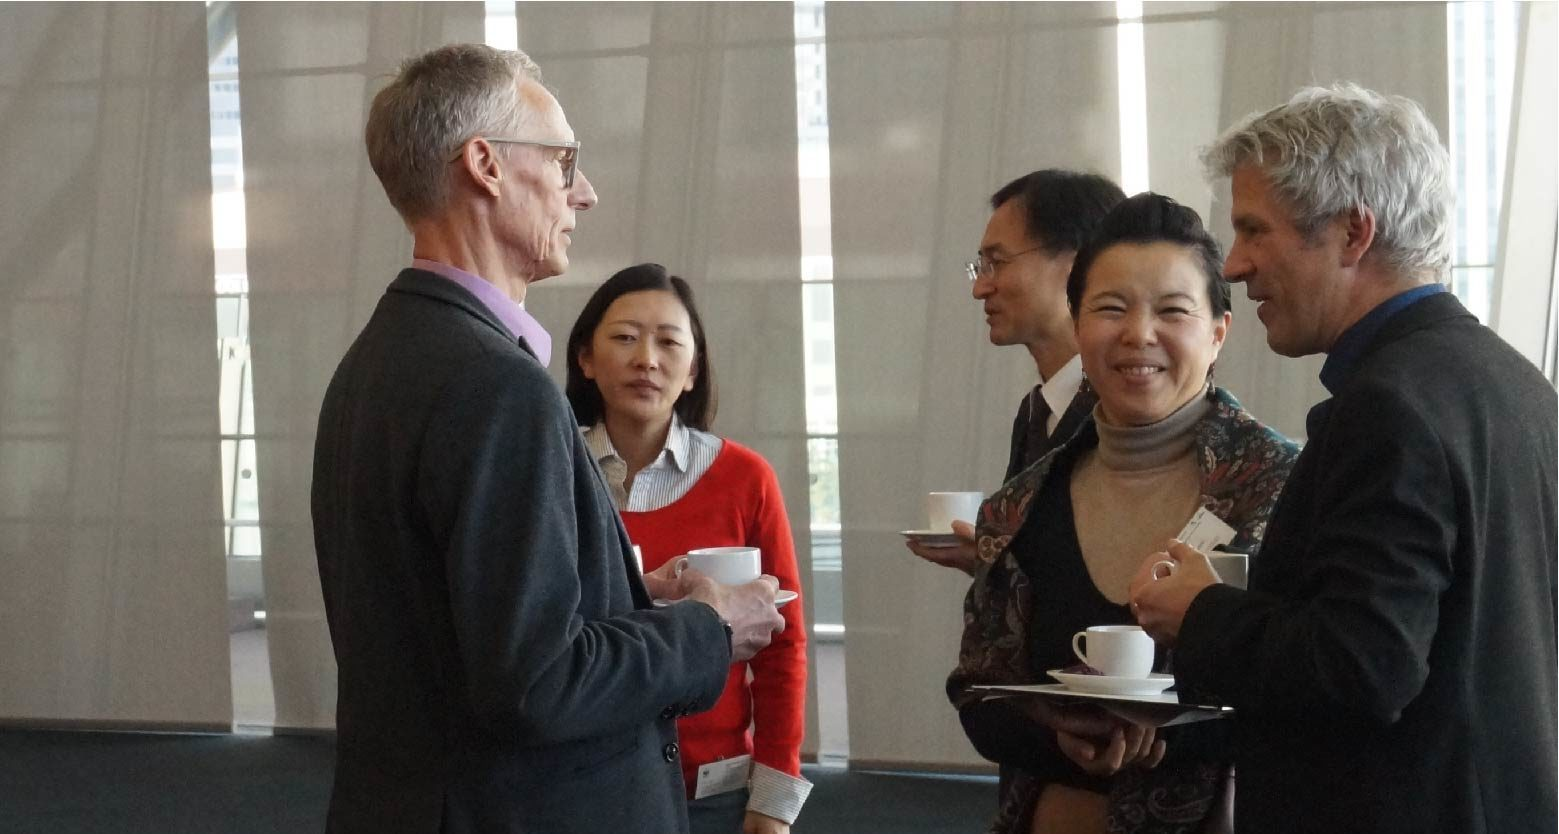 Five people are to be seen. One of them is a speaker of the symposium. He is holding a businesscard. The other people are holding cups of coffee and one woman next to the speaker is smyling towards the viewer